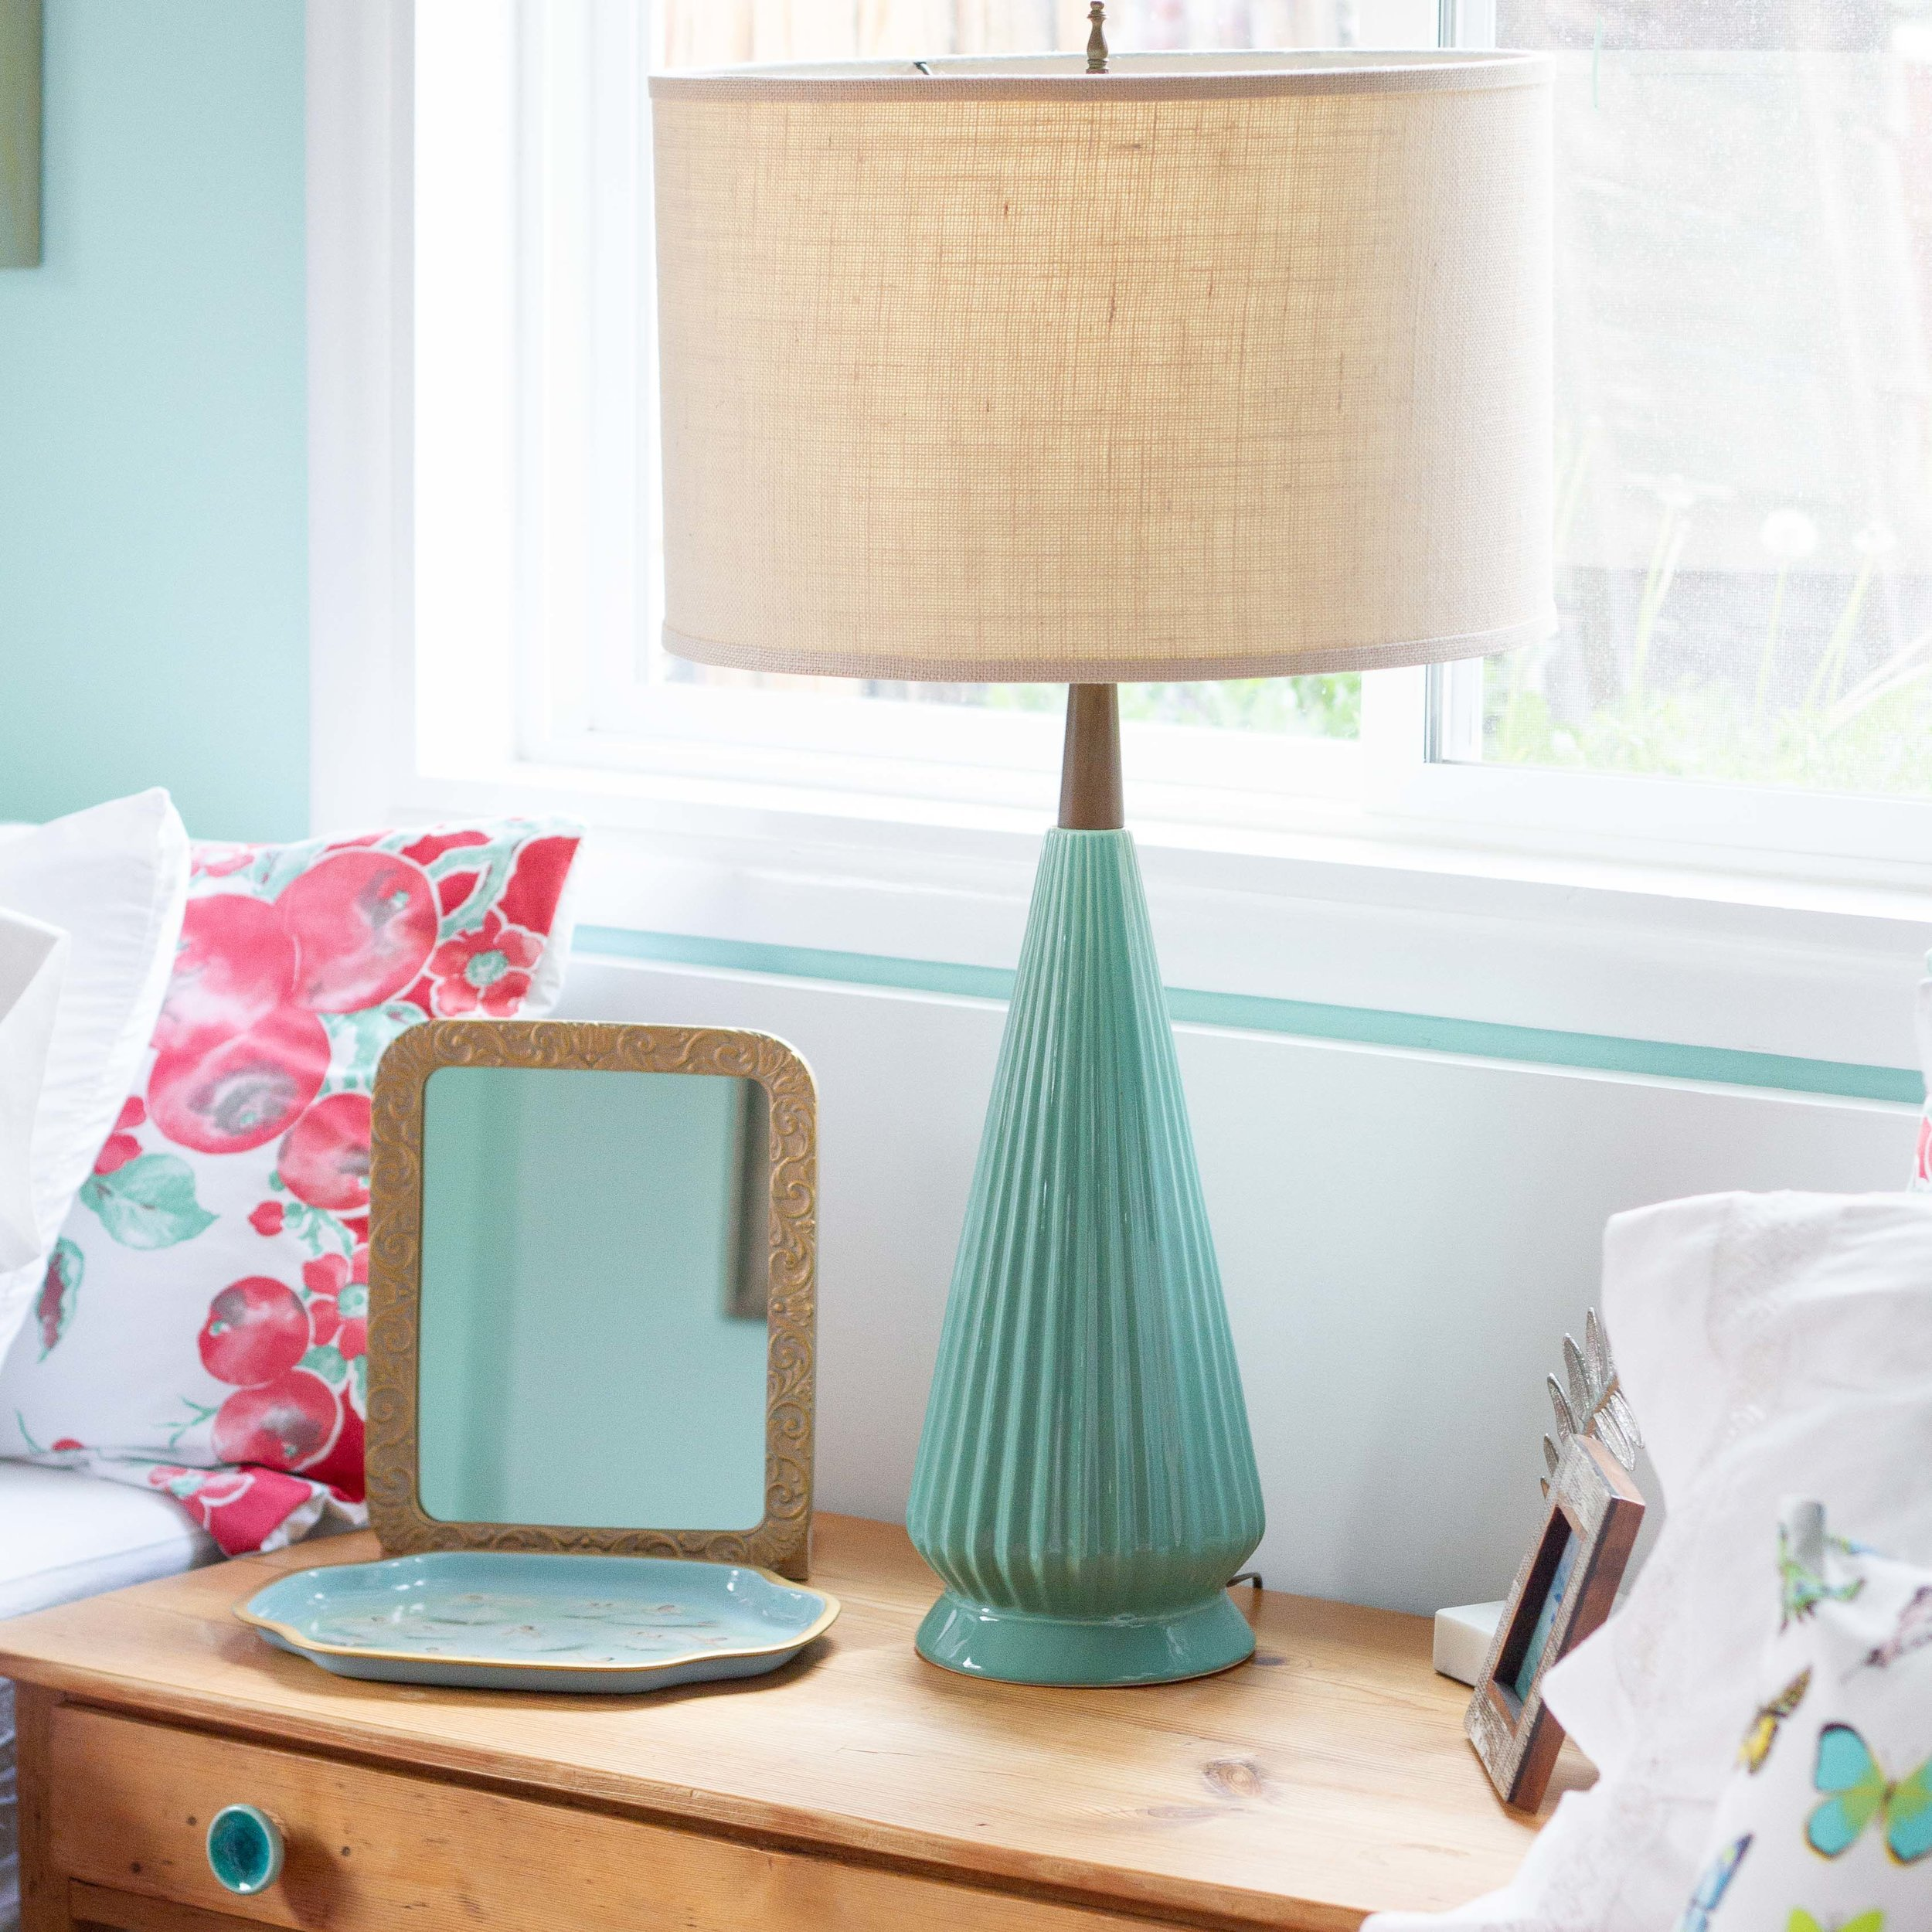 A Craigslist find, this Mid Century lamp just needed new wiring and a shade. The color is perfect in the room.